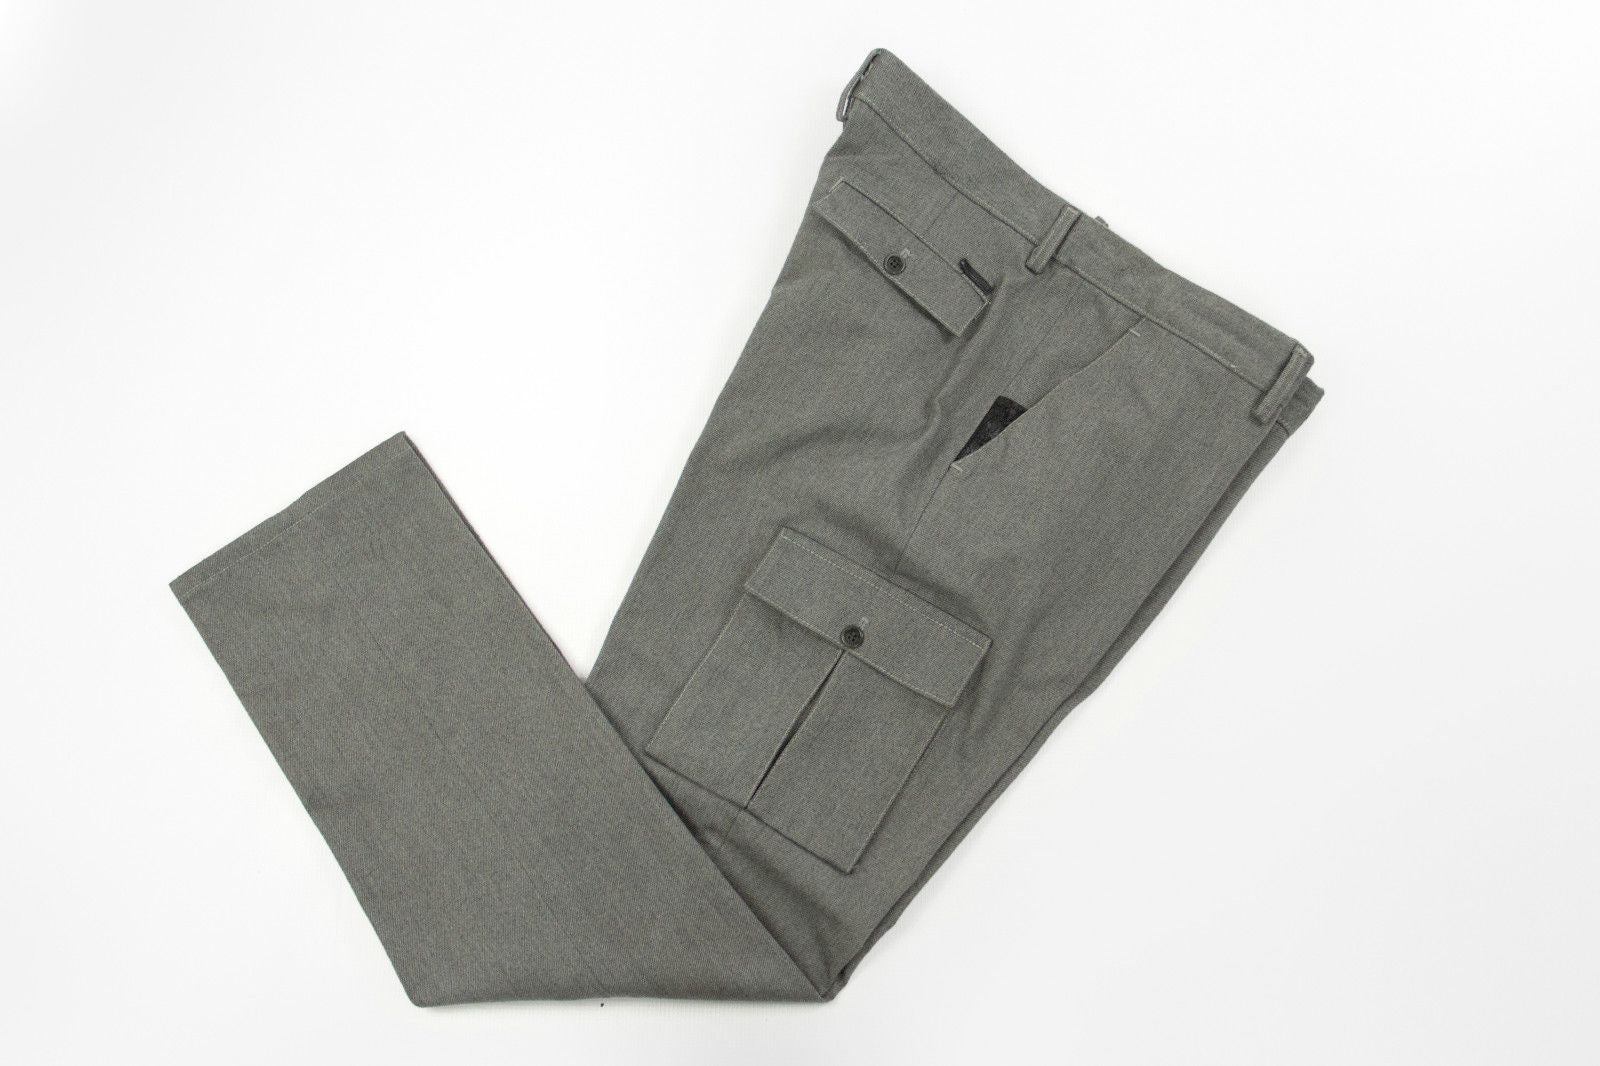 HAMAKI-HO  Men's Stretch Gray Twill Flat Front Cargo Pants, EU 54, USA 44 - secondfirst